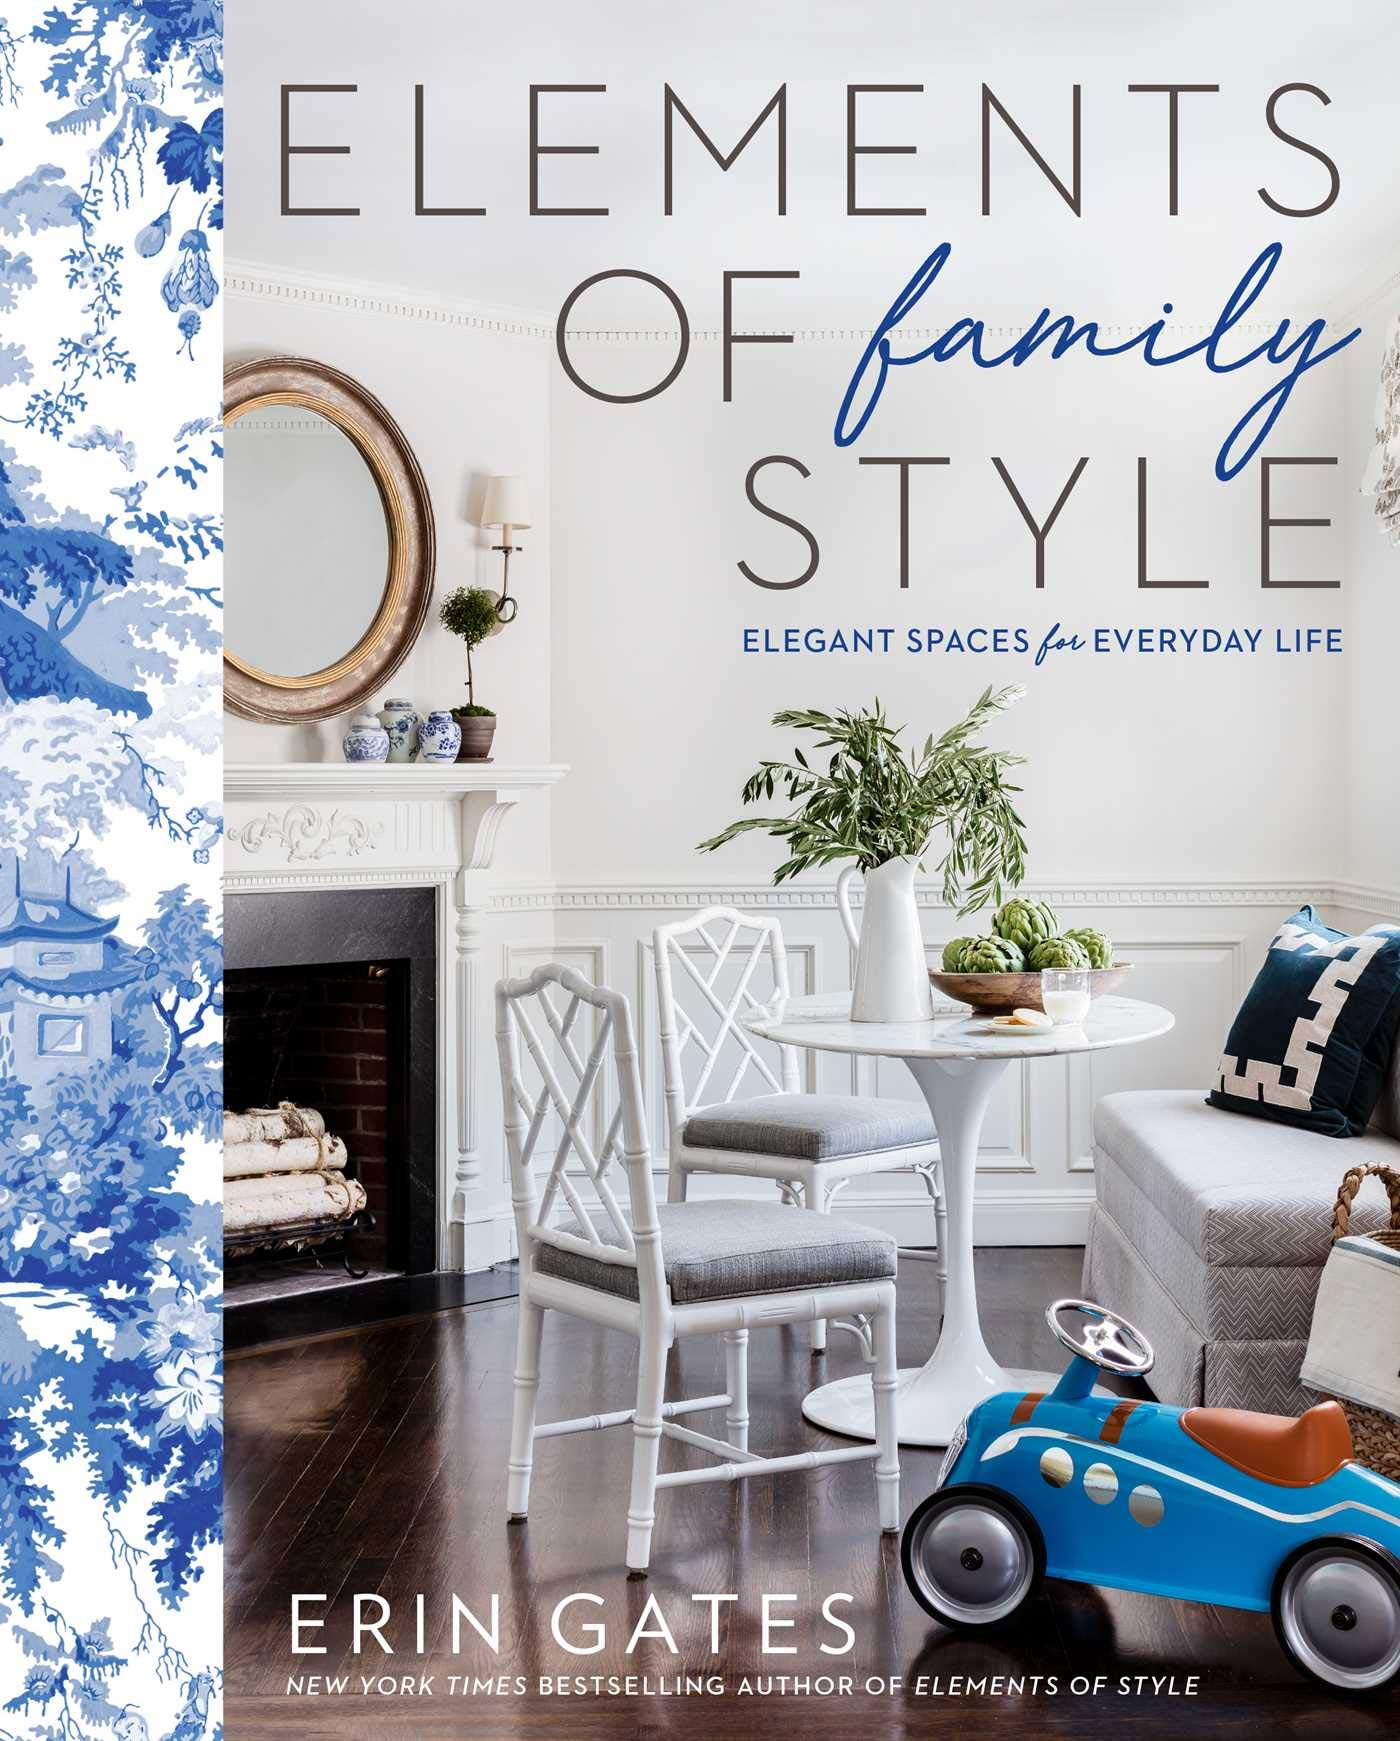 Bookshelf styling finds from Amazon: Elements of Family Style